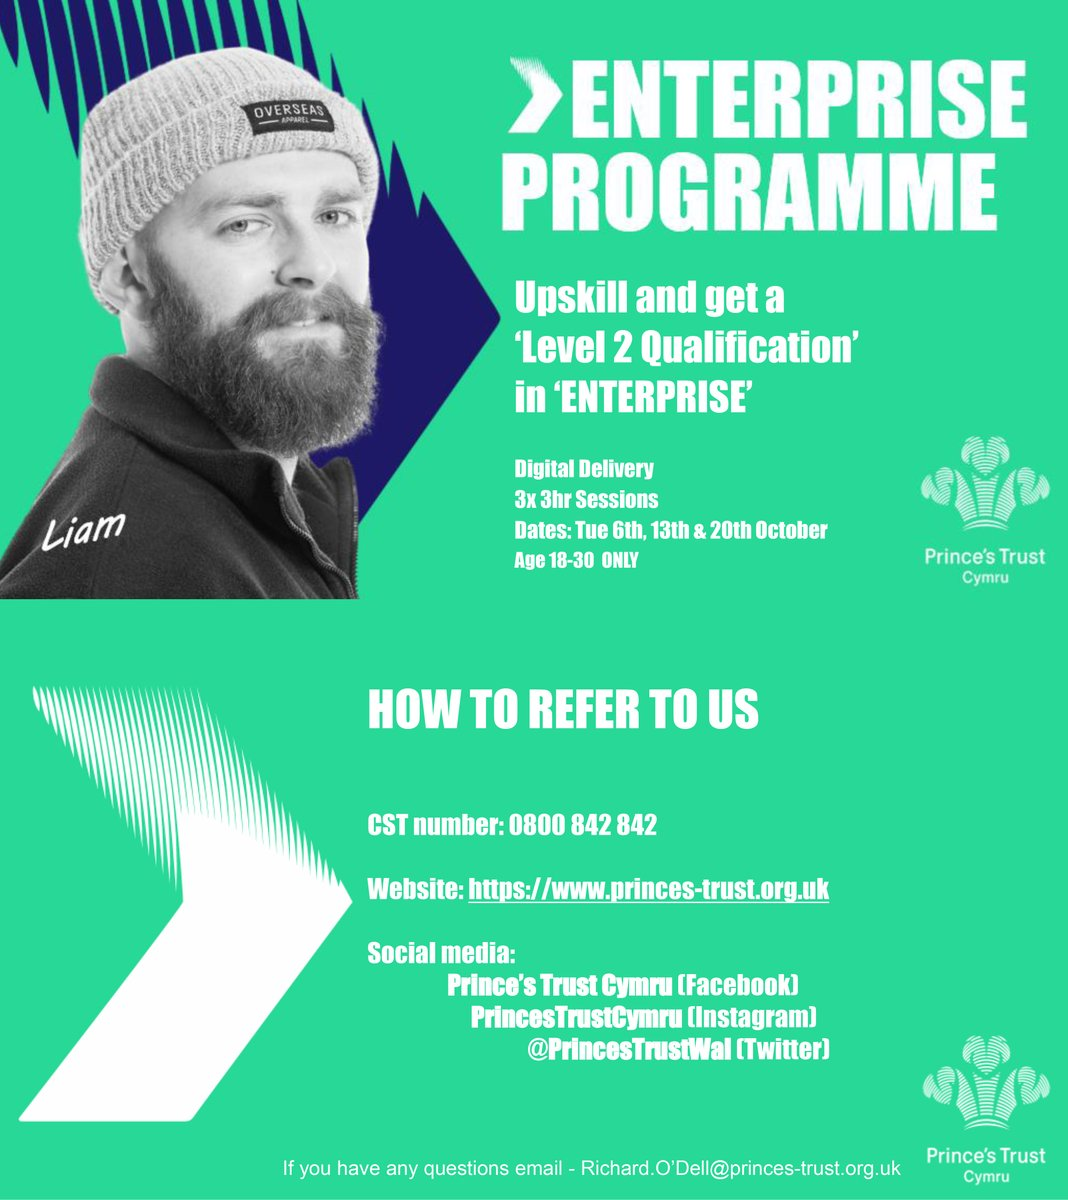 The Prince's Trust have a fantastic opportunity for young people (18-30 y/o) to attend an 'Enterprise Course' focusing on a Level 1 & 2 Qualification in Enterprise.  Call our CST line on 0800 842 842 Or you can email - Richard.O'Dell@princes-trust.org.uk #servingthosewhoservedus https://t.co/OPcQ8Ru1Mn